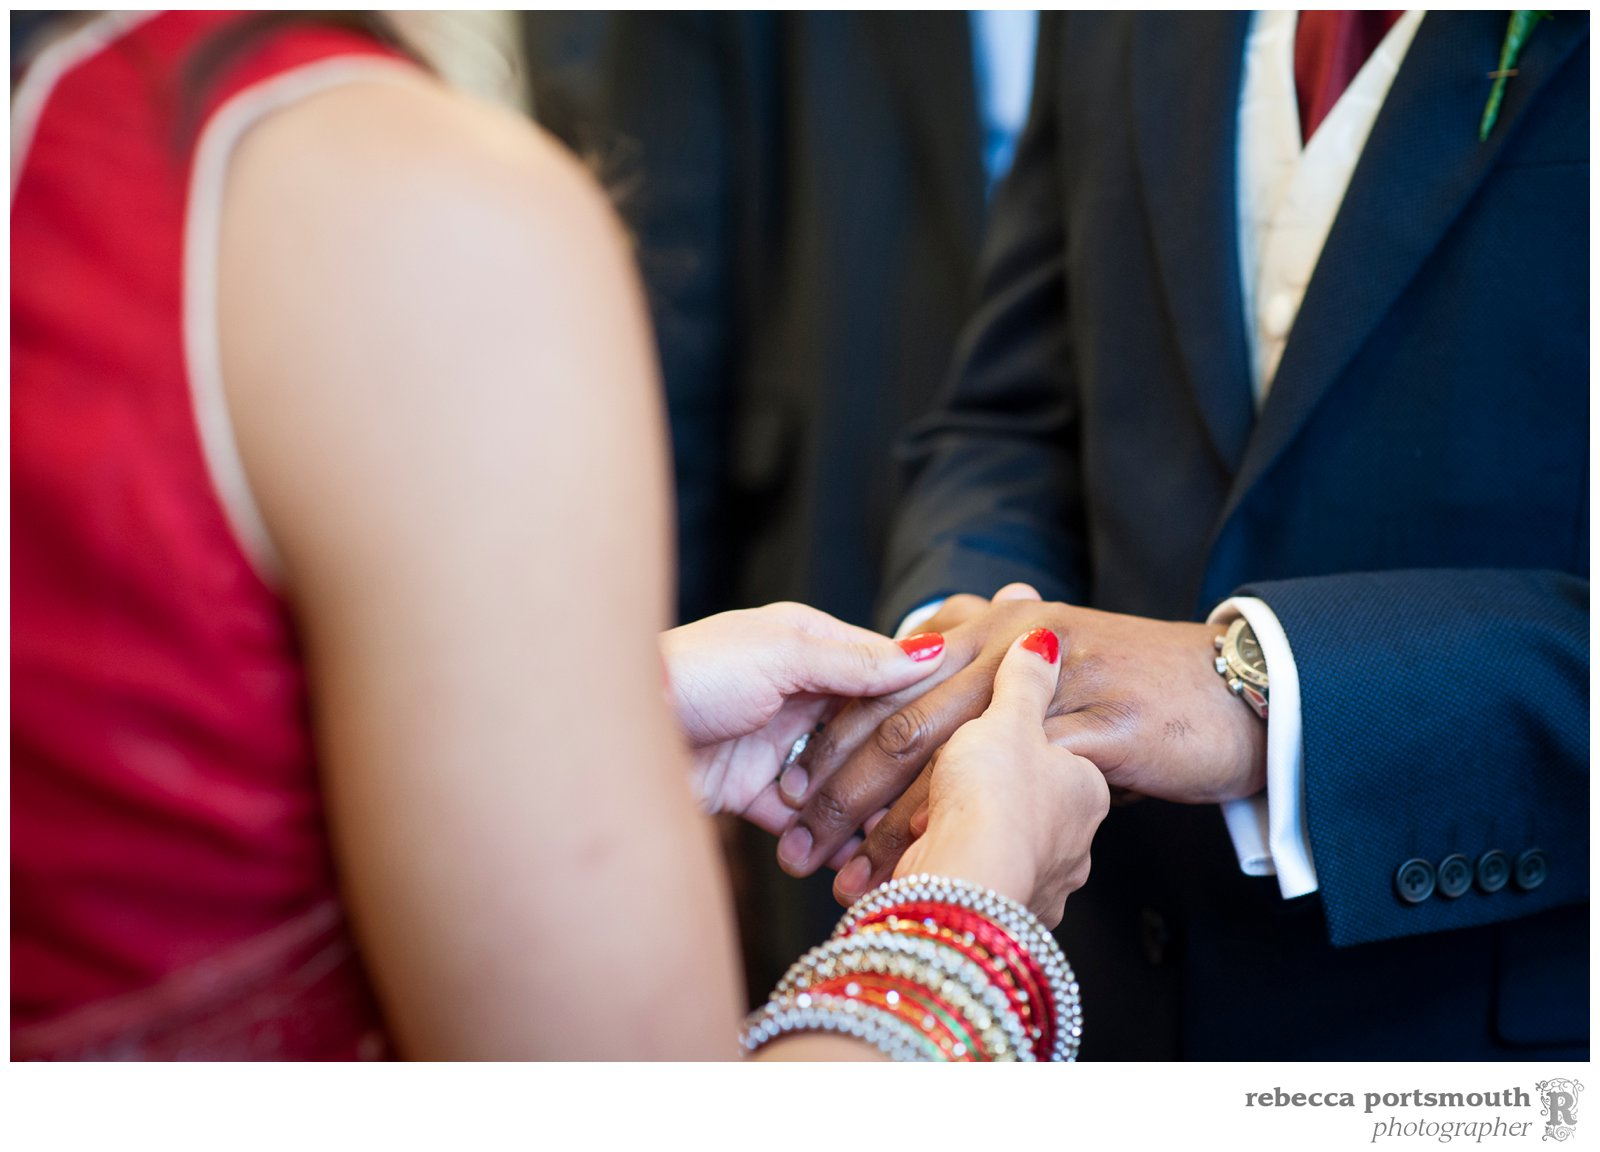 A close-up photograph of the bride and groom's hands during their Mayfair Library wedding ceremony in Westminster.